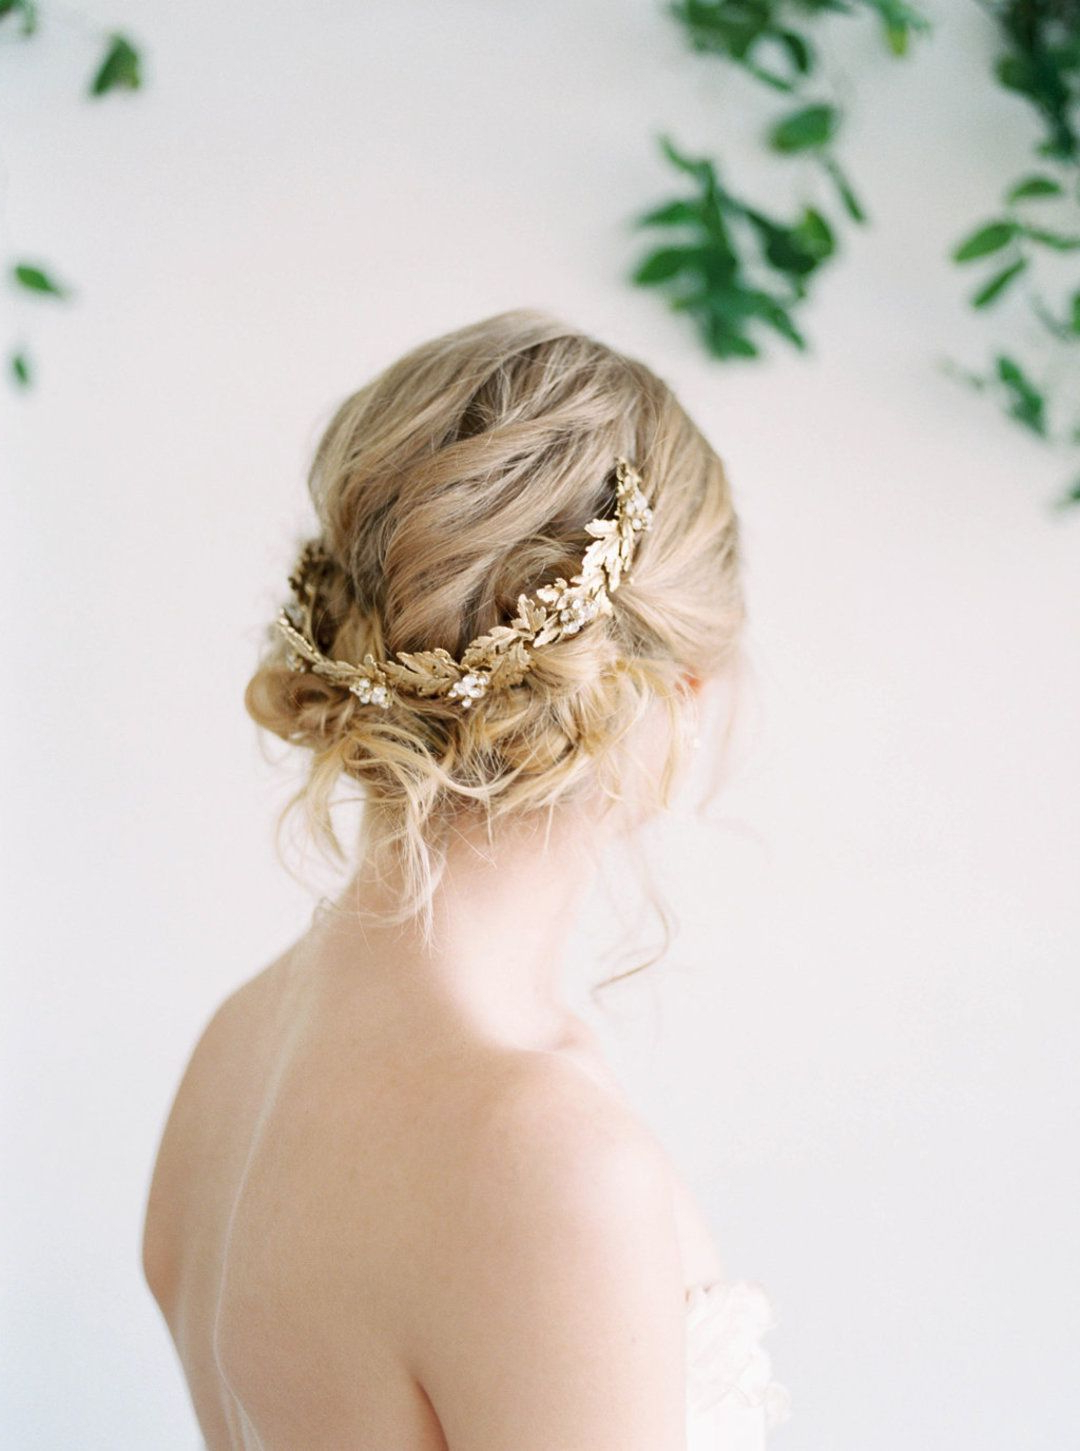 Gold Hair Accessories, Romantic With Regard To Preferred Curled Bridal Hairstyles With Tendrils (View 2 of 20)